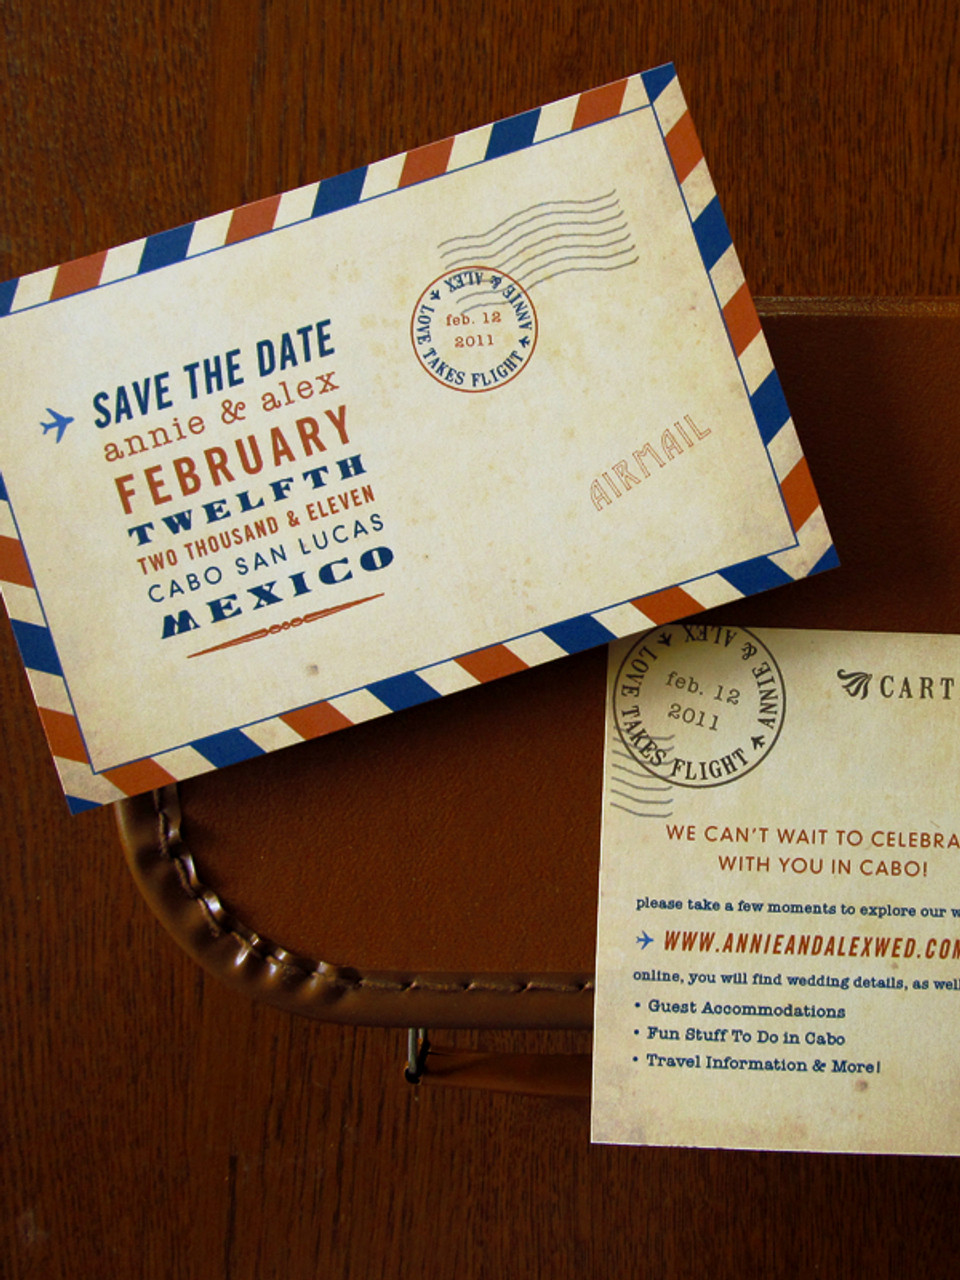 5fd5d41bfe Vintage Airmail Carte Postale Save the Date or Invitation PostCards by  Earmark Social Goods Inc.